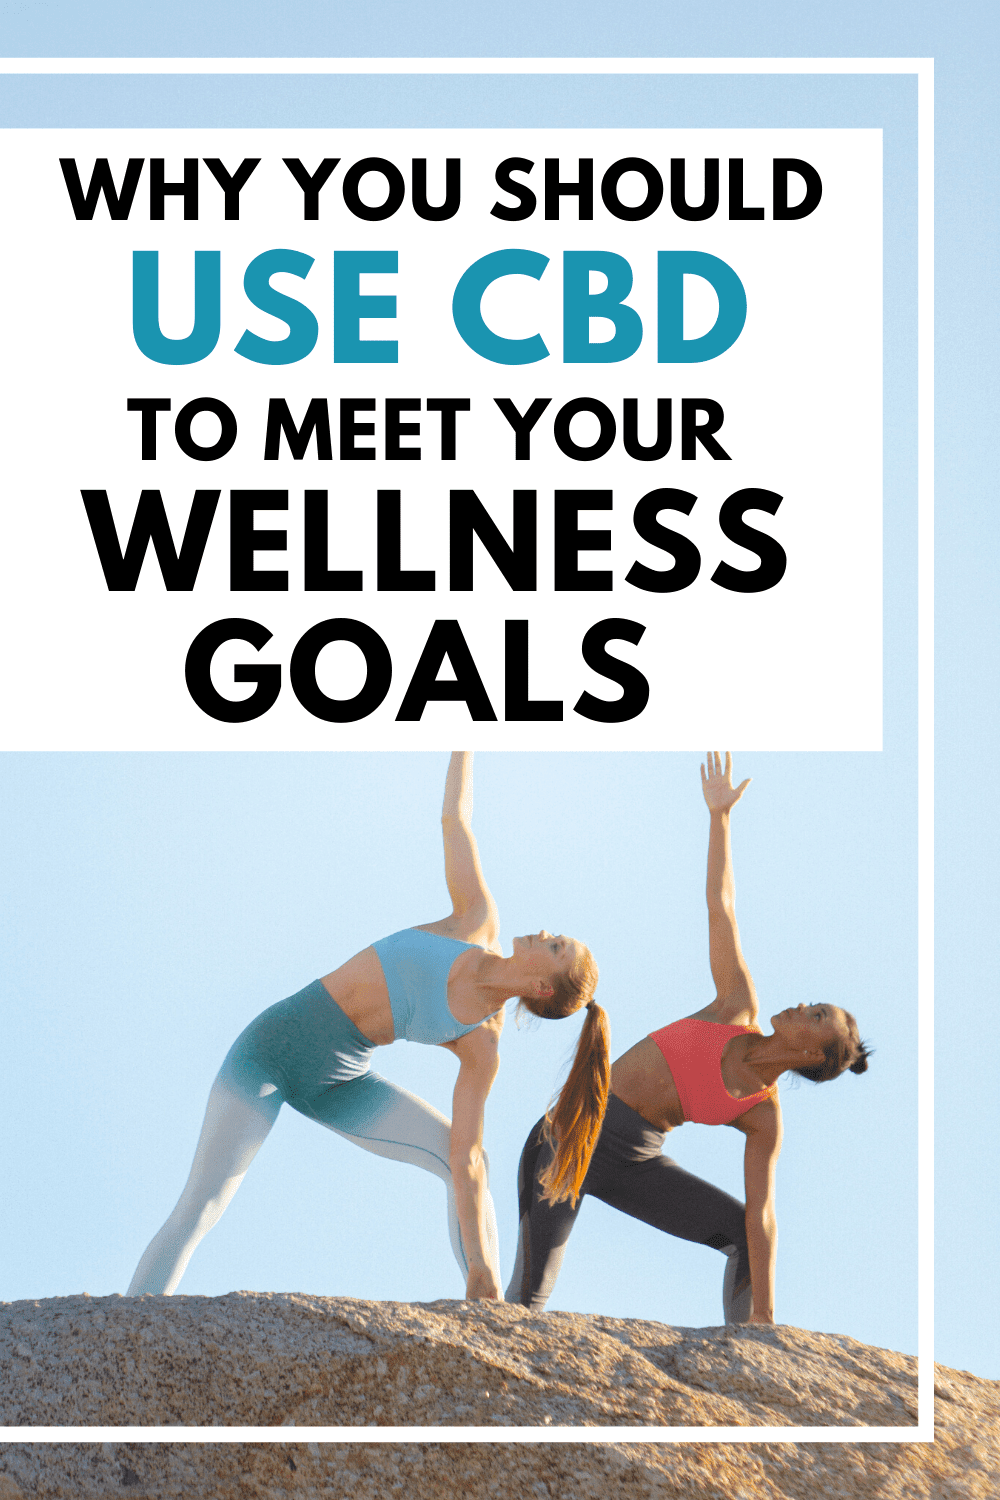 Why You Should Use CBD to Meet Your Wellness Goals